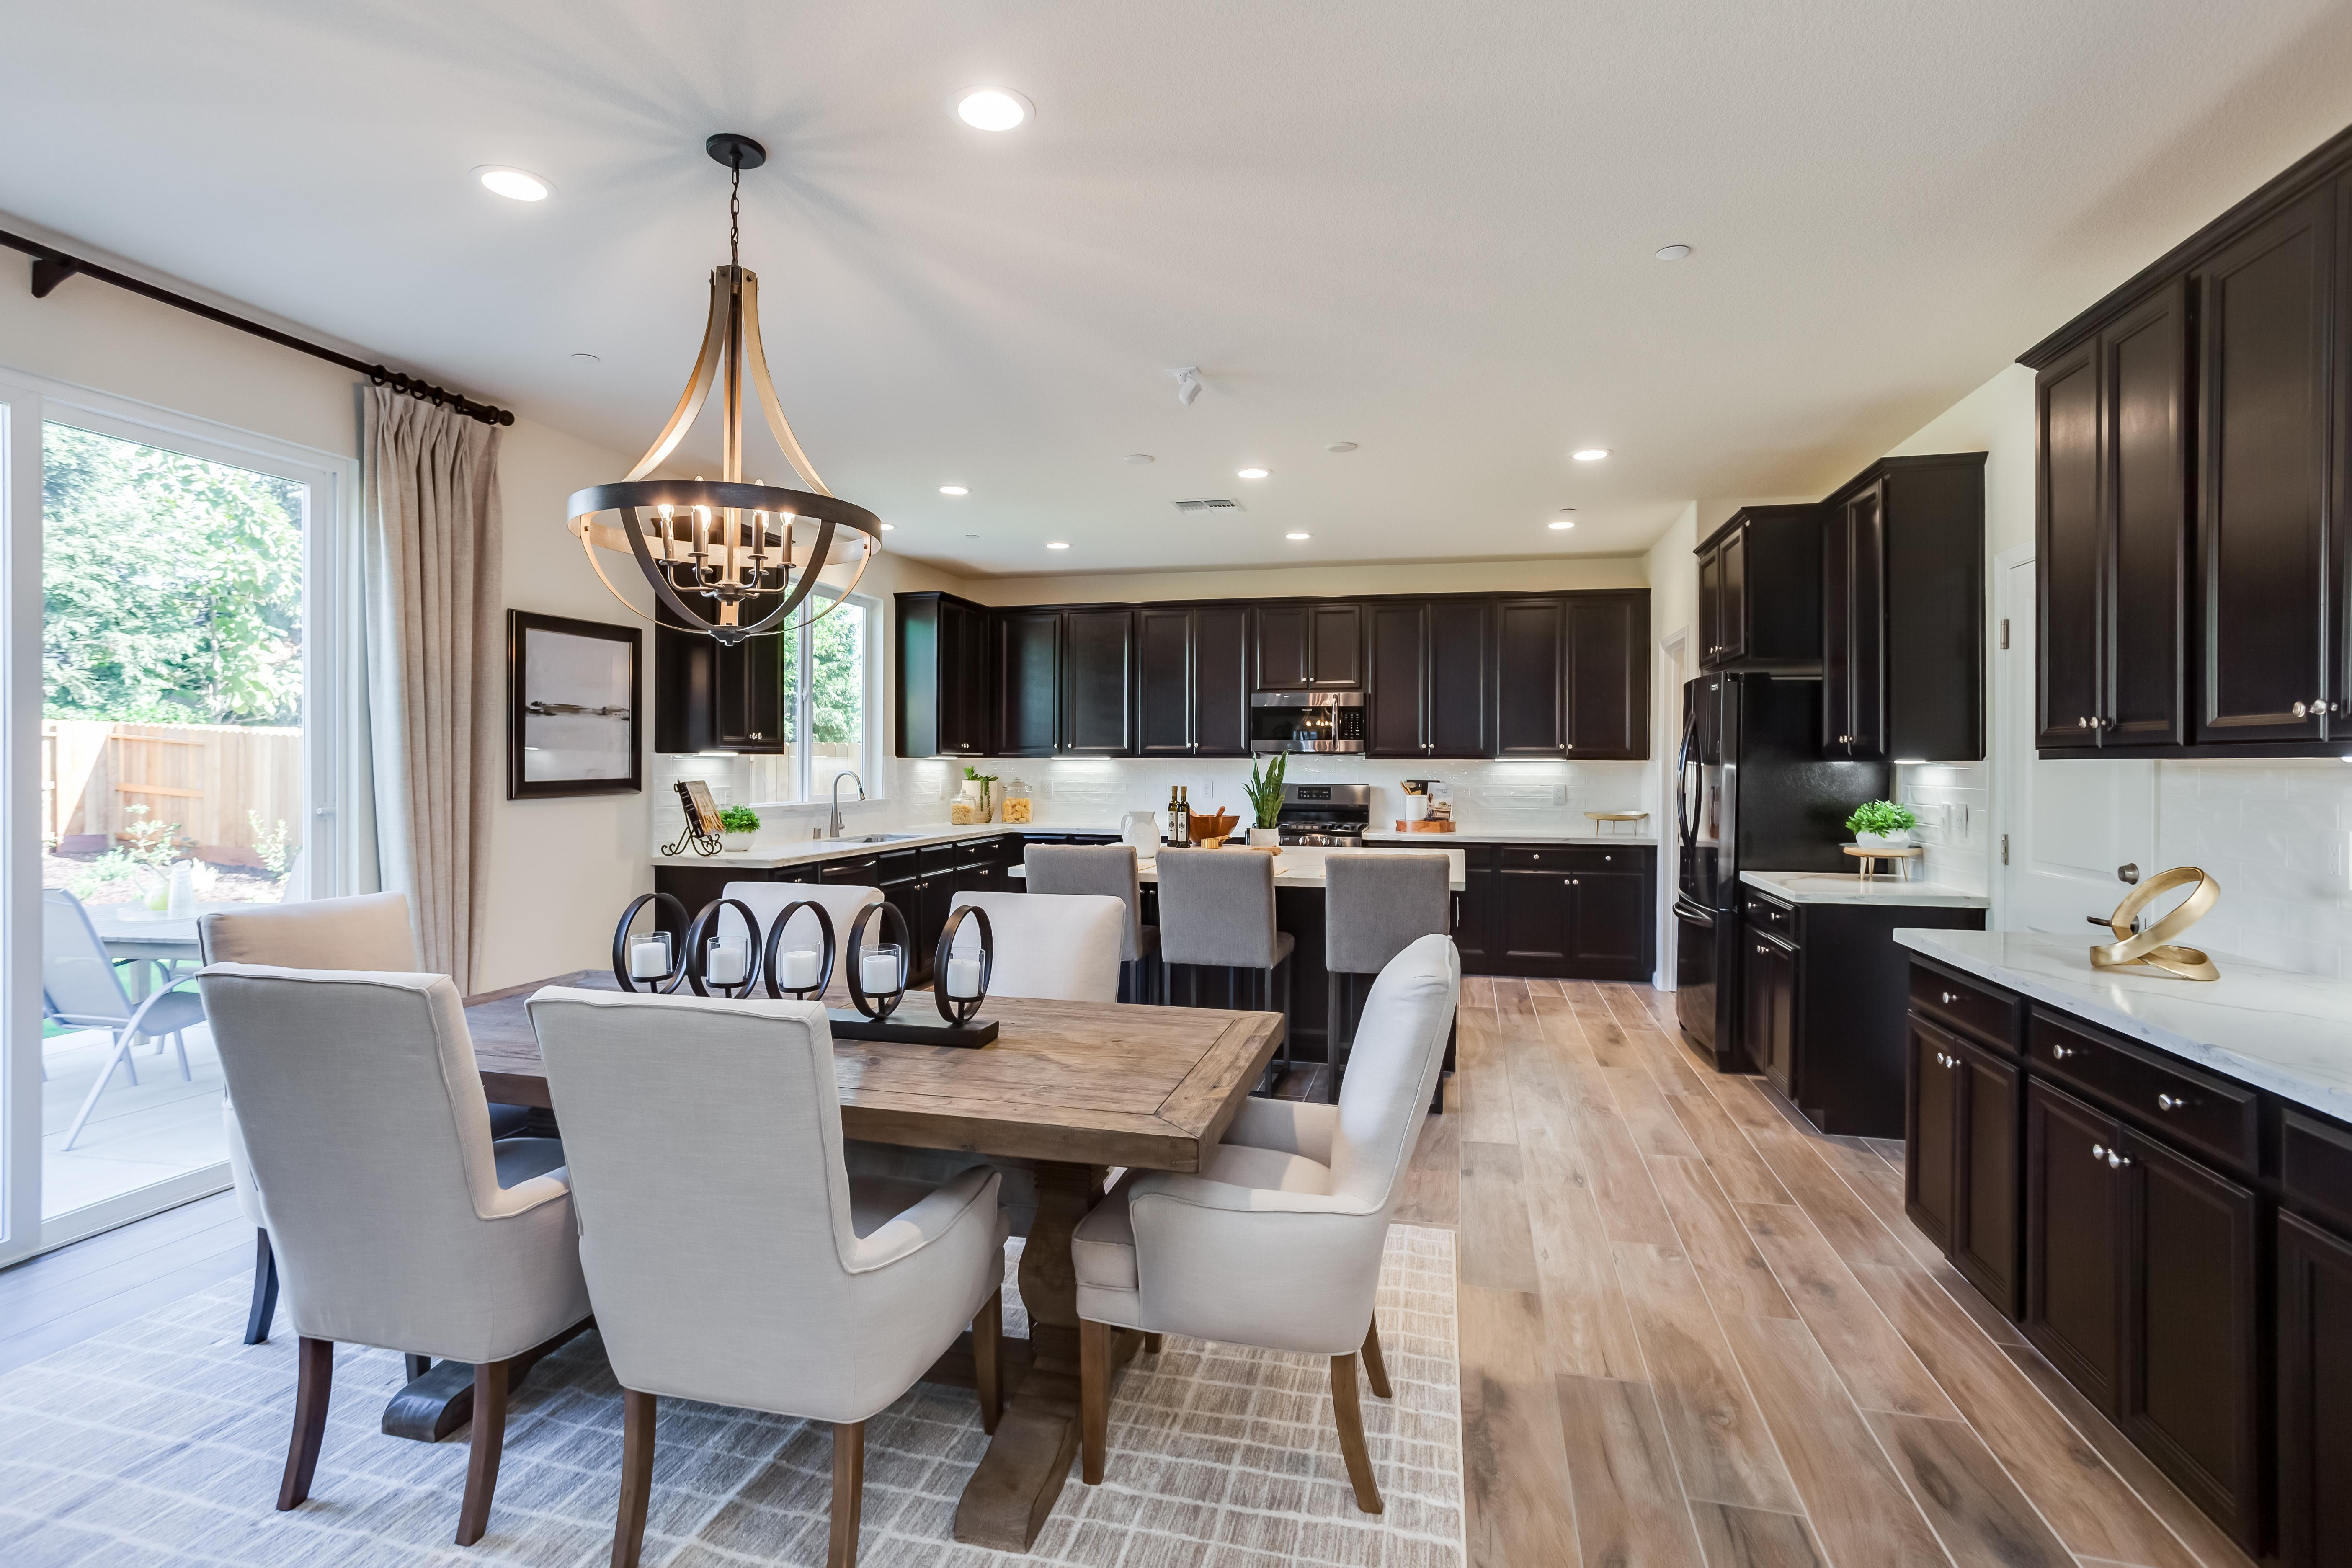 Kitchen featured in the Residence Four By Bright Homes in Merced, CA